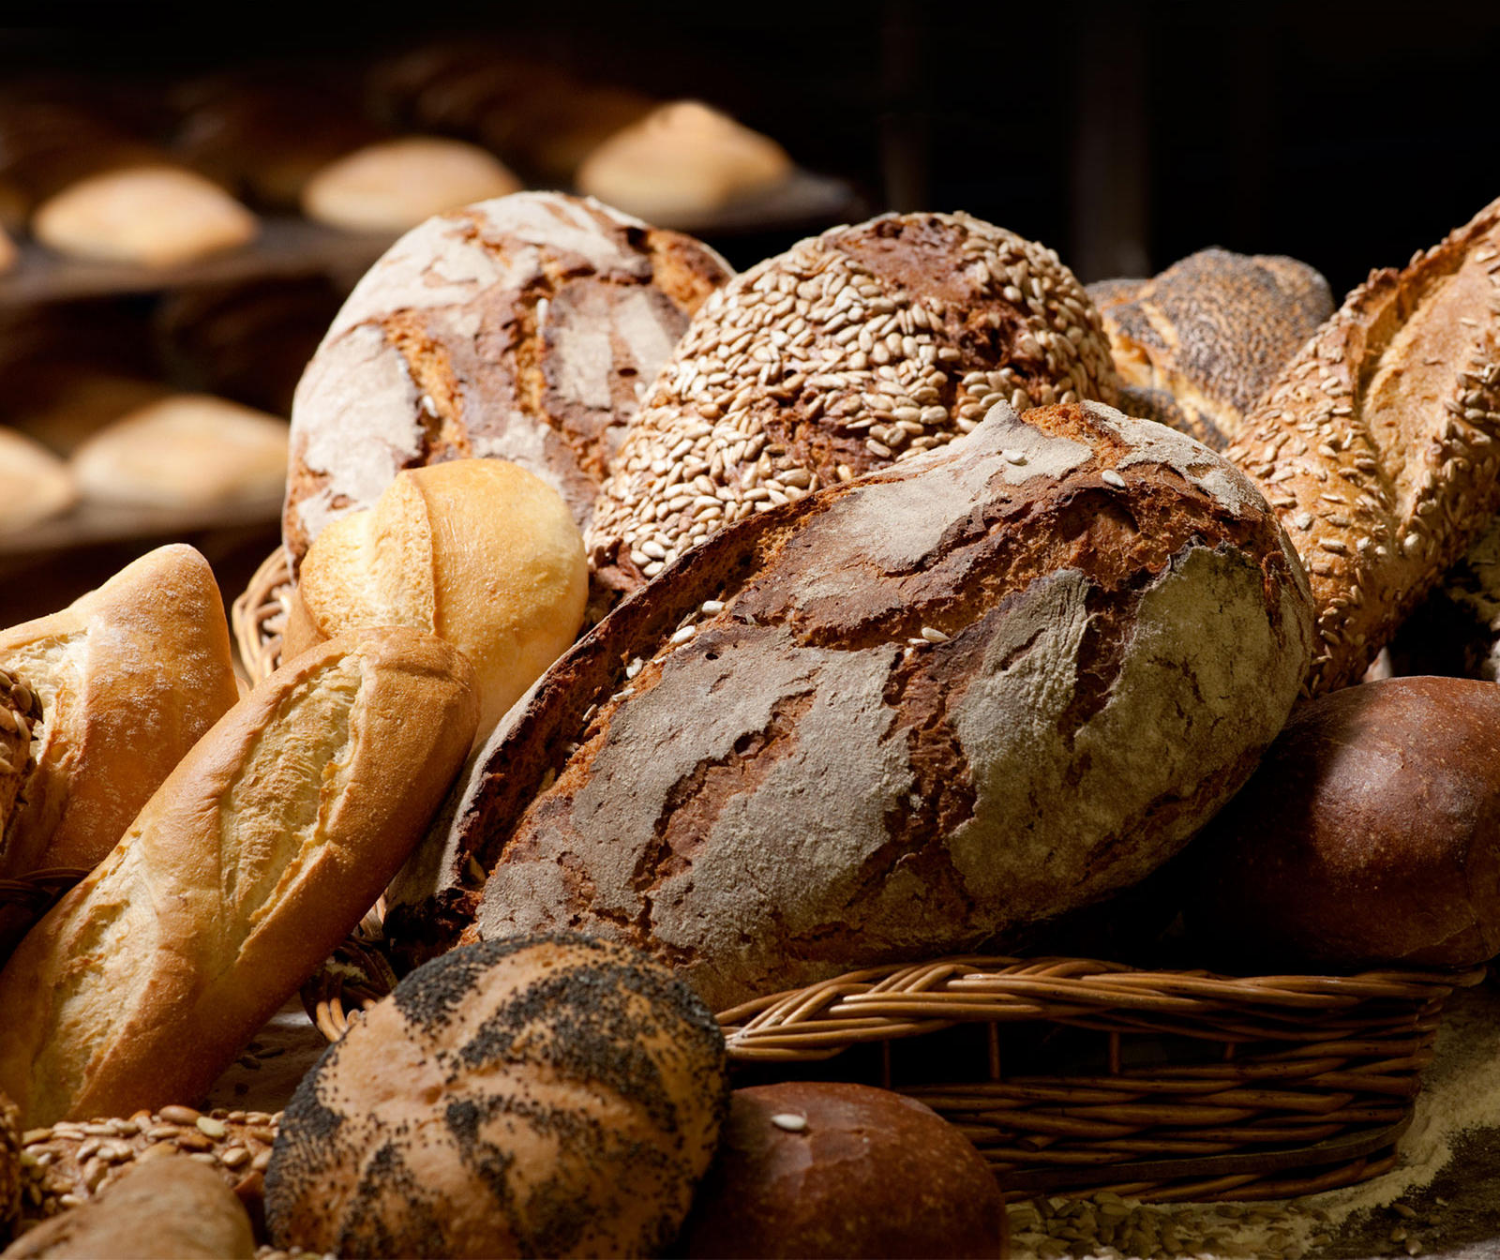 Our daily fresh baked bread for you